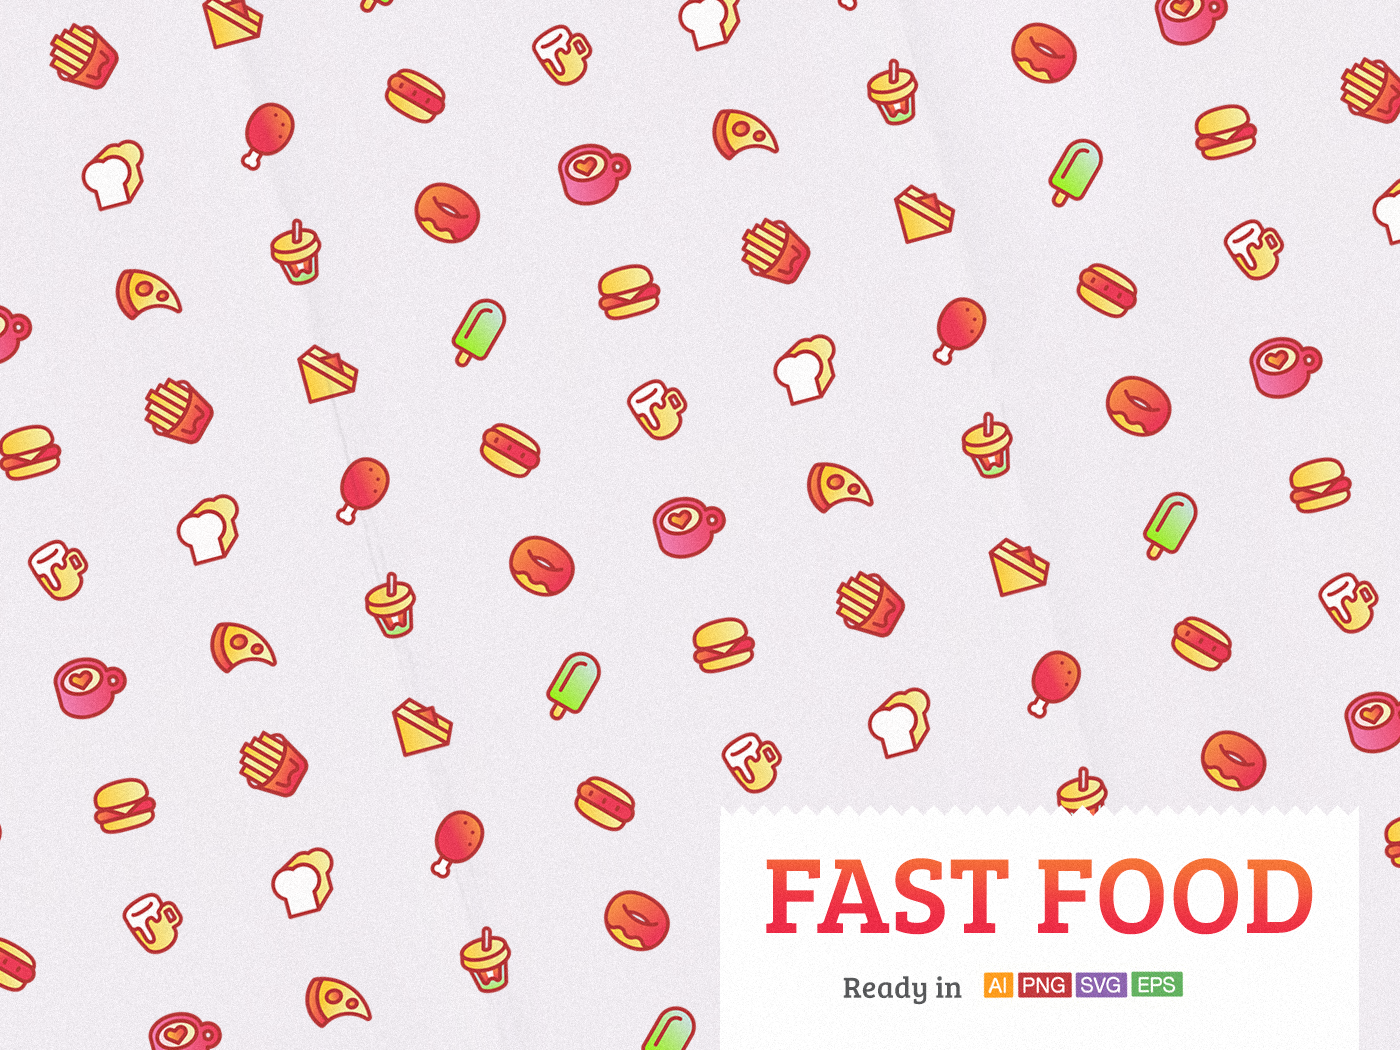 Fast Food lunch sandwich bread hamburger vector icon coffee food pop drink